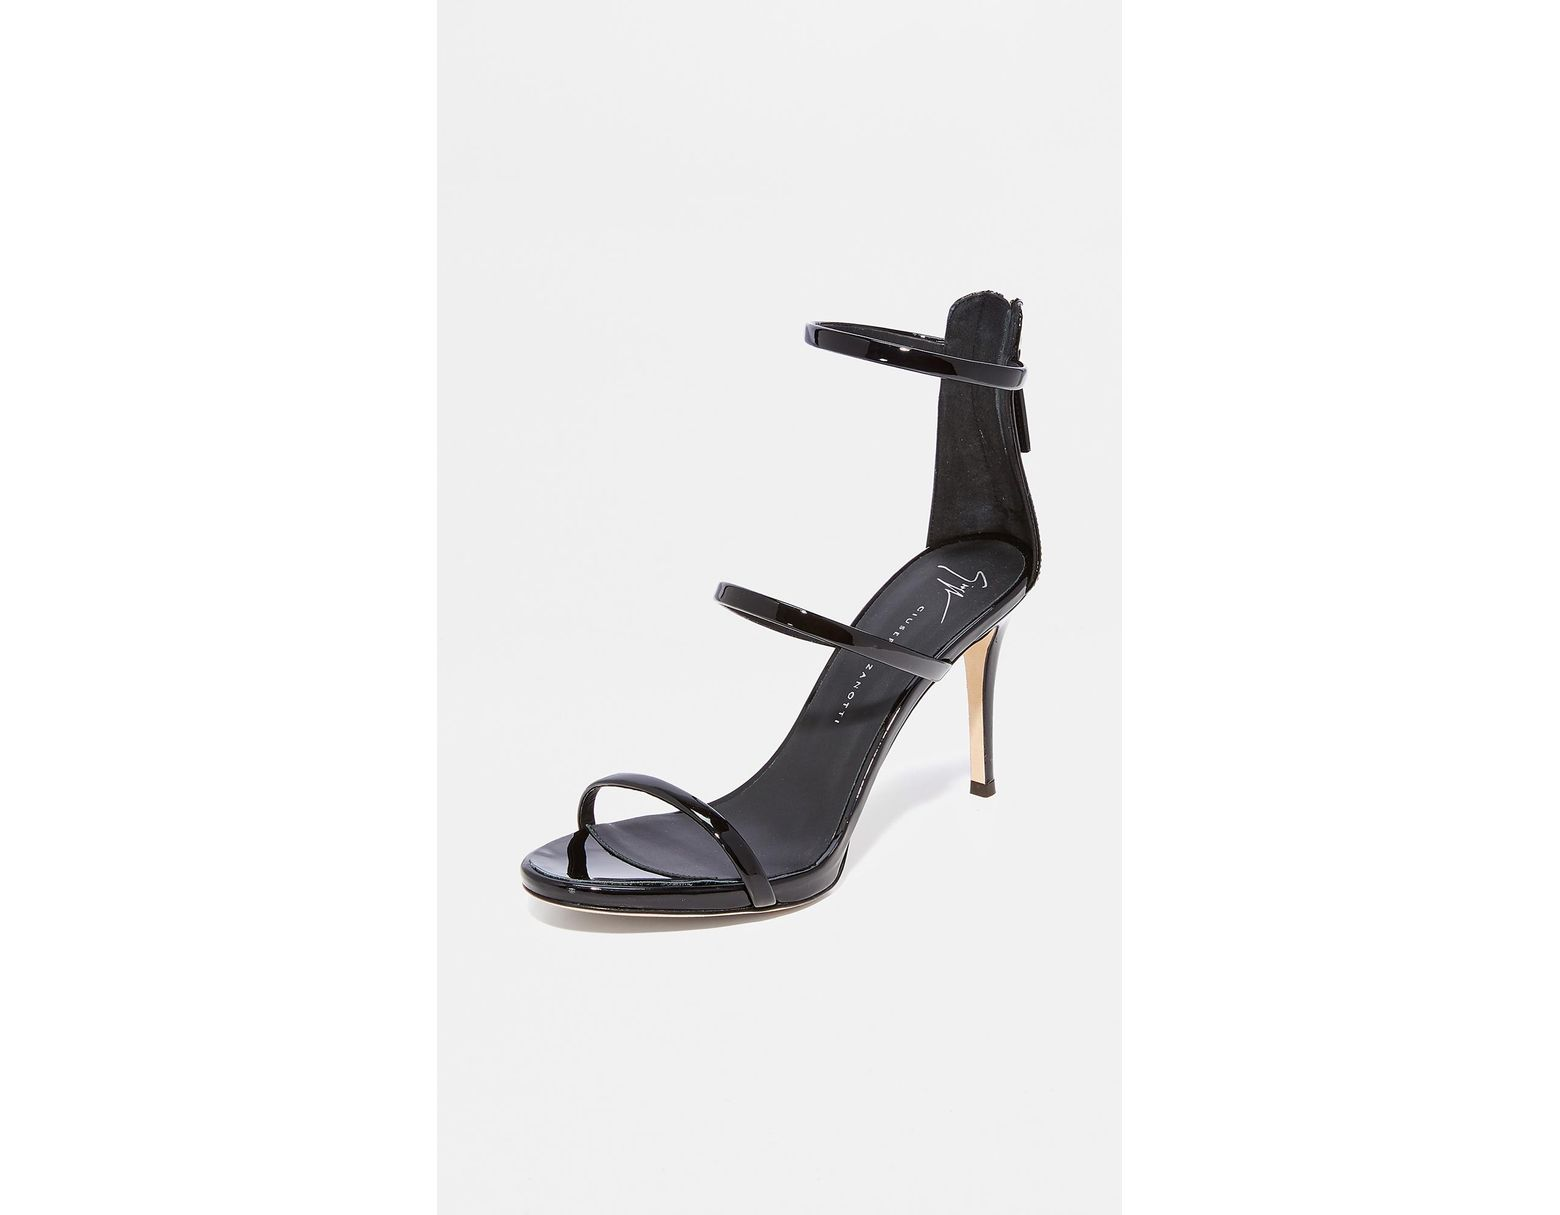 bbd174489be8d Giuseppe Zanotti Alien Sandal Heels in Black - Save 10% - Lyst